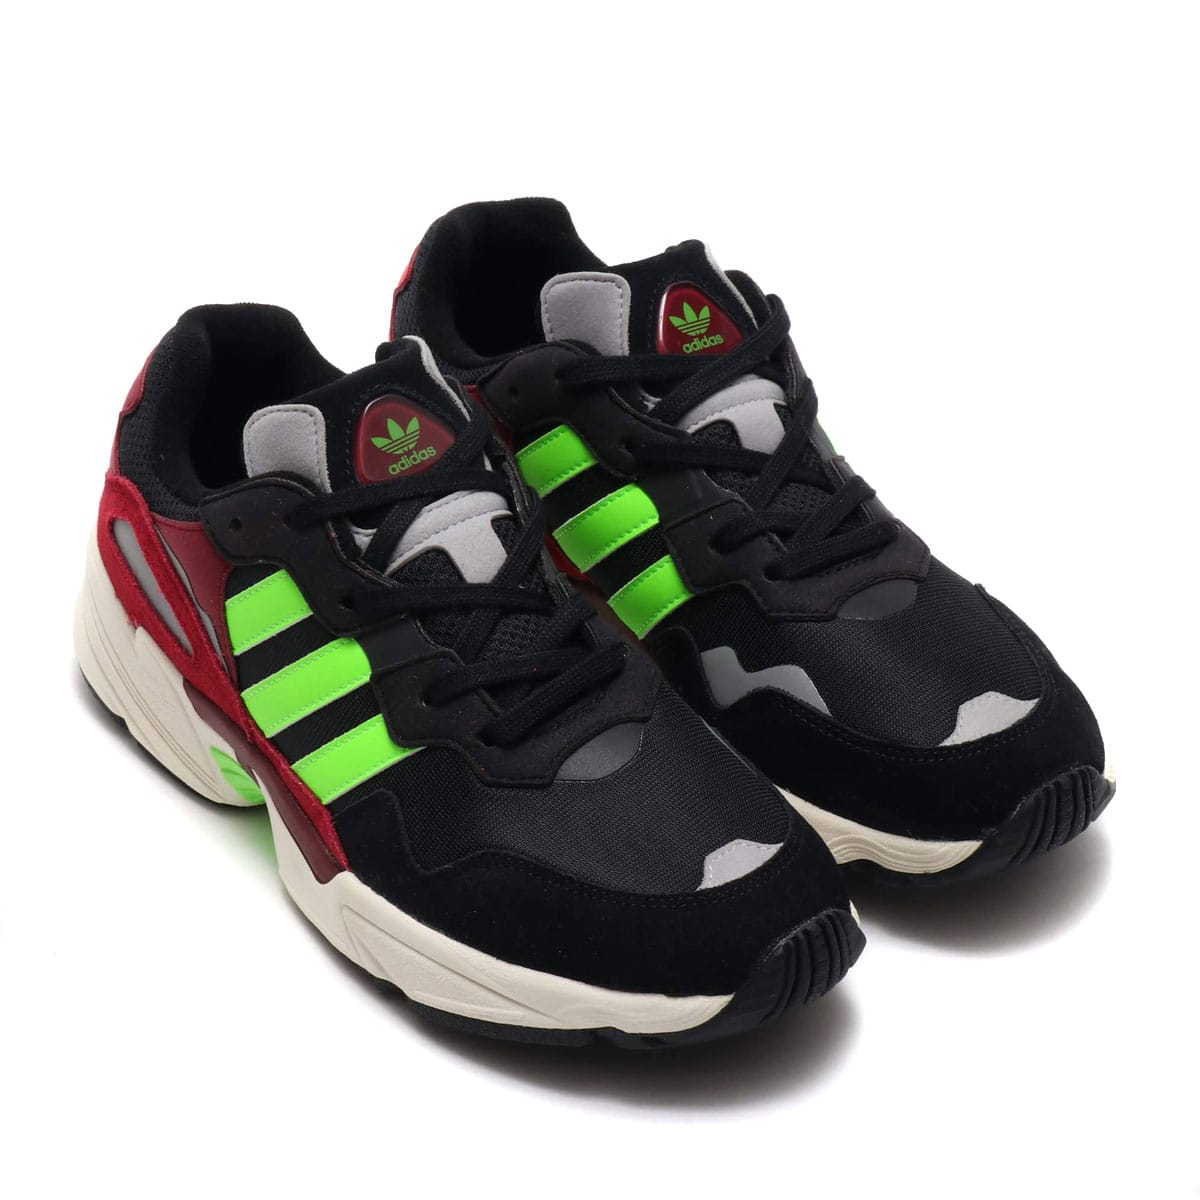 adidas Originals YUNG-96 CORE BLACK/SOLAR GREEN/COLLEGEATE BURGUNDY 19FW-I_photo_large